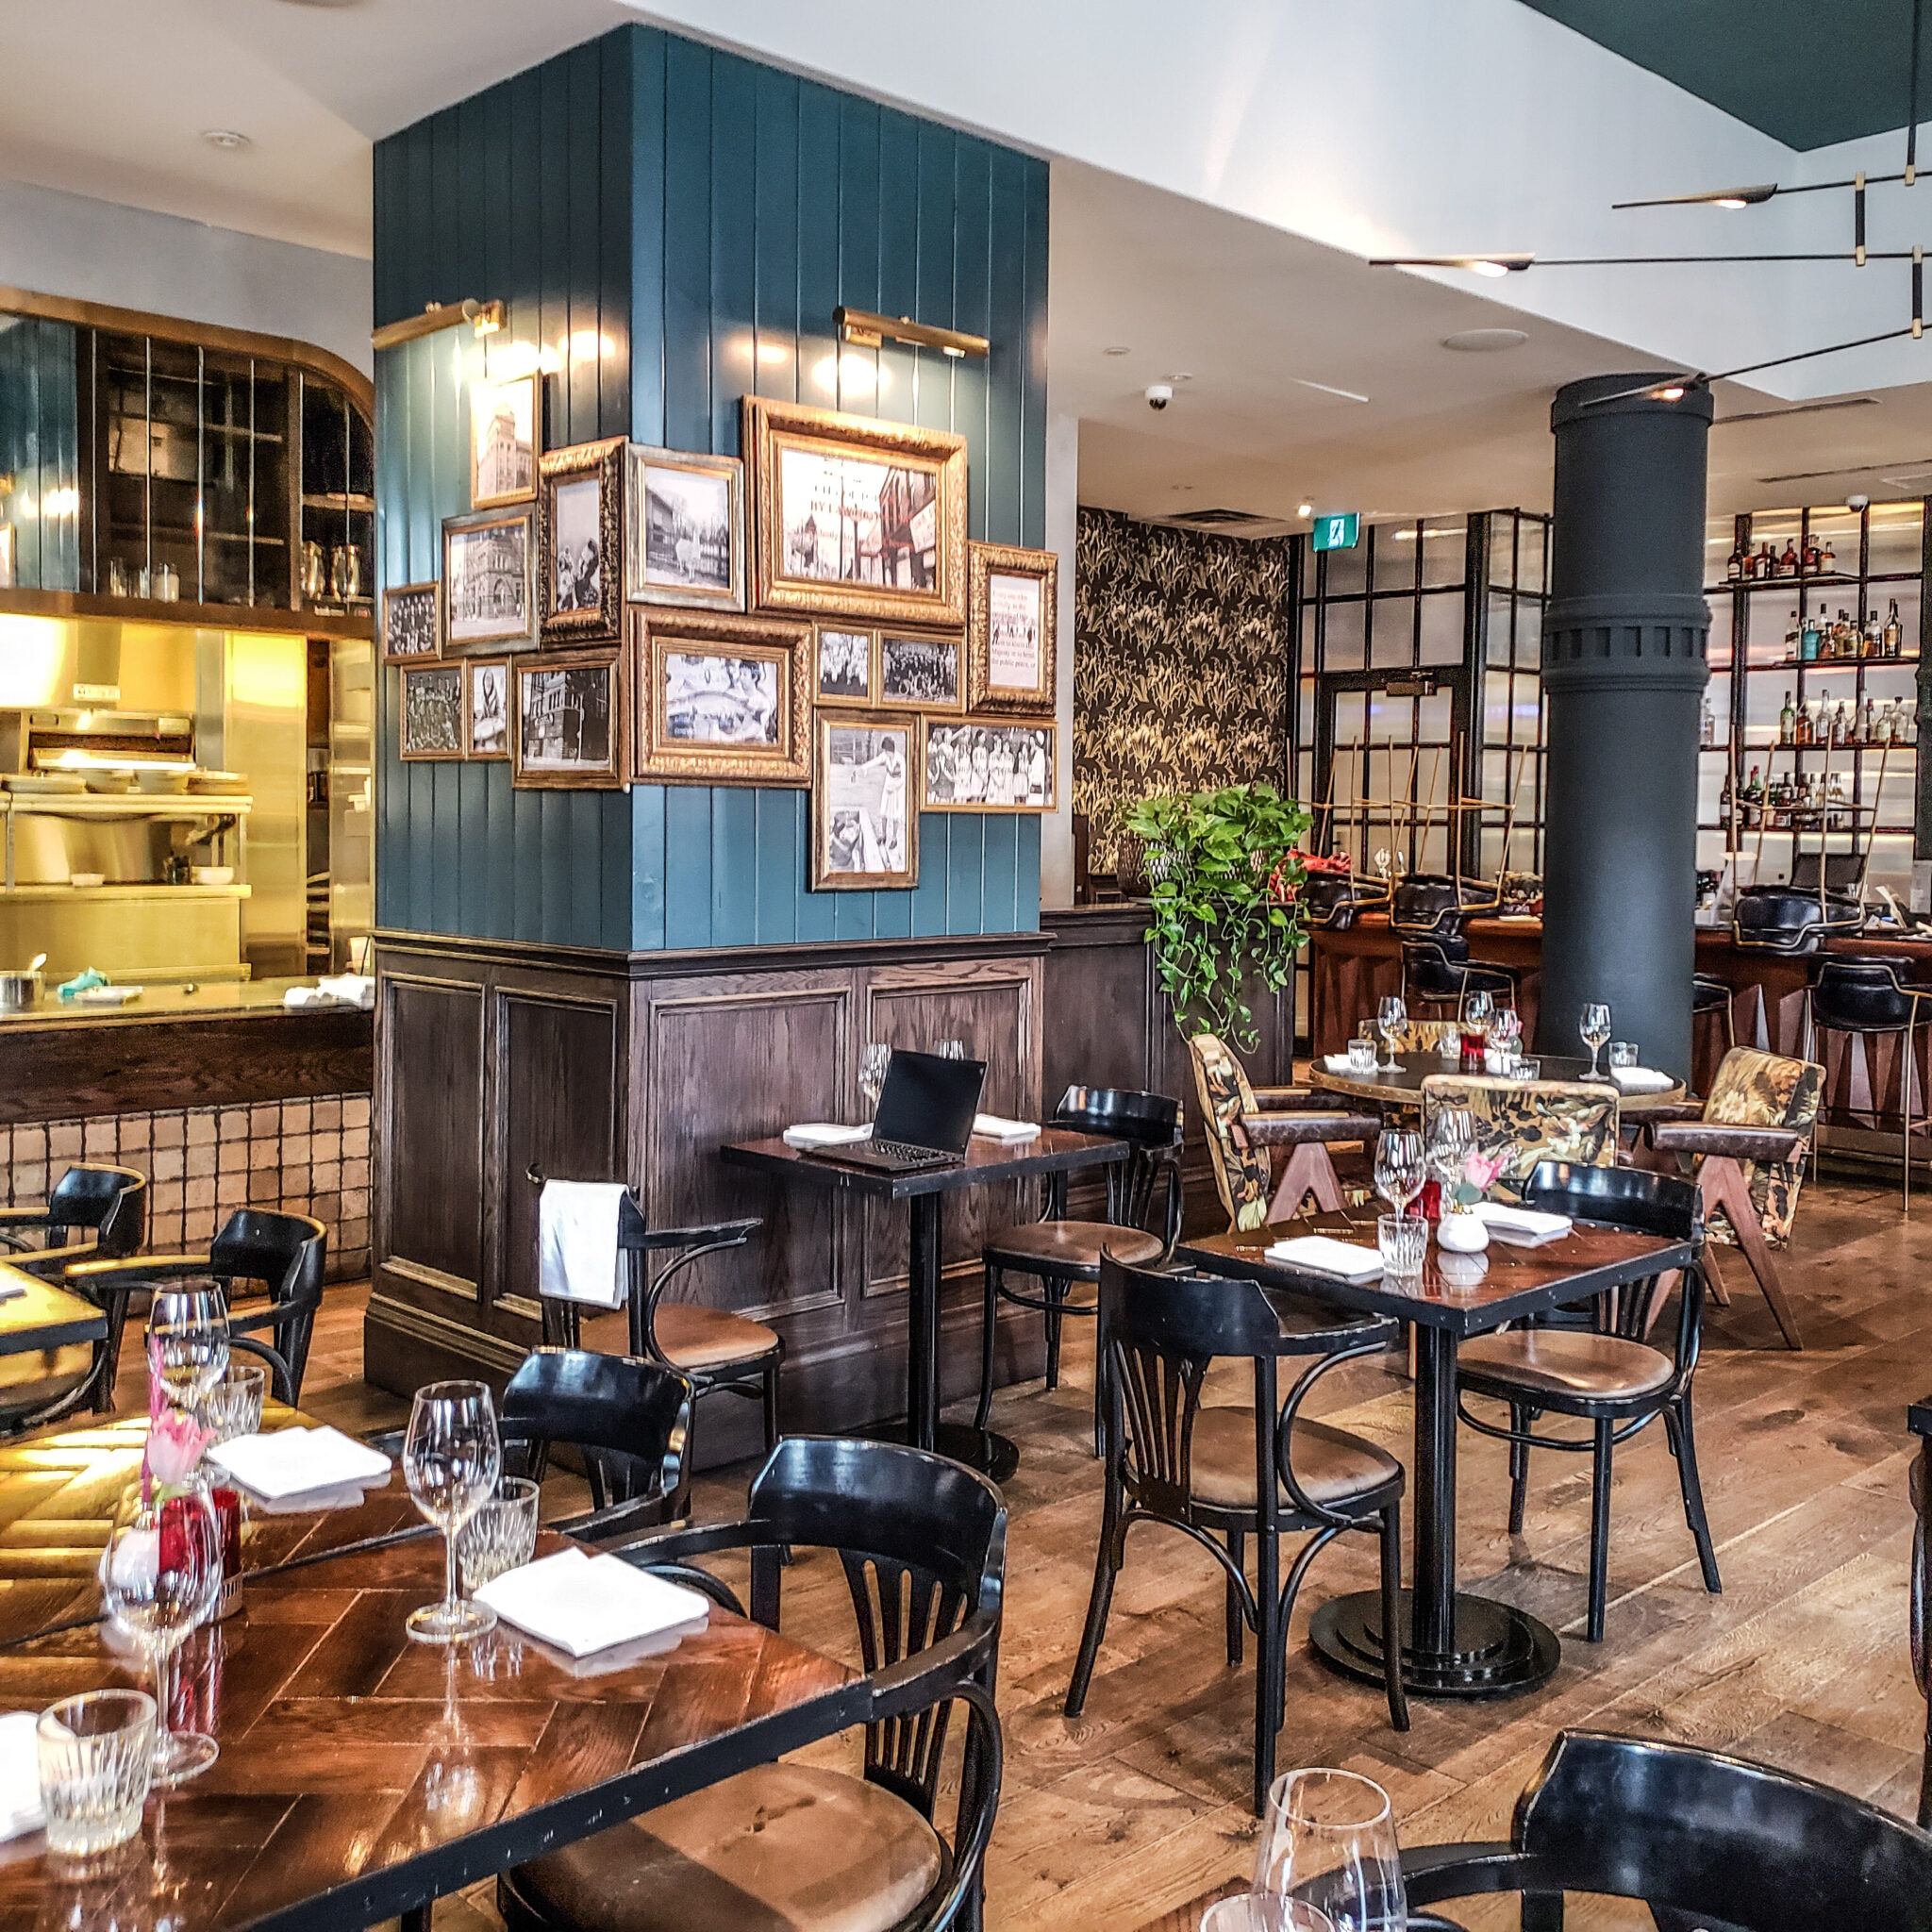 The Broadview Hotel - Broadview Hotel - Queen East - Toronto East - Toronto Life - Boutique Hotel - The Civic - Interior